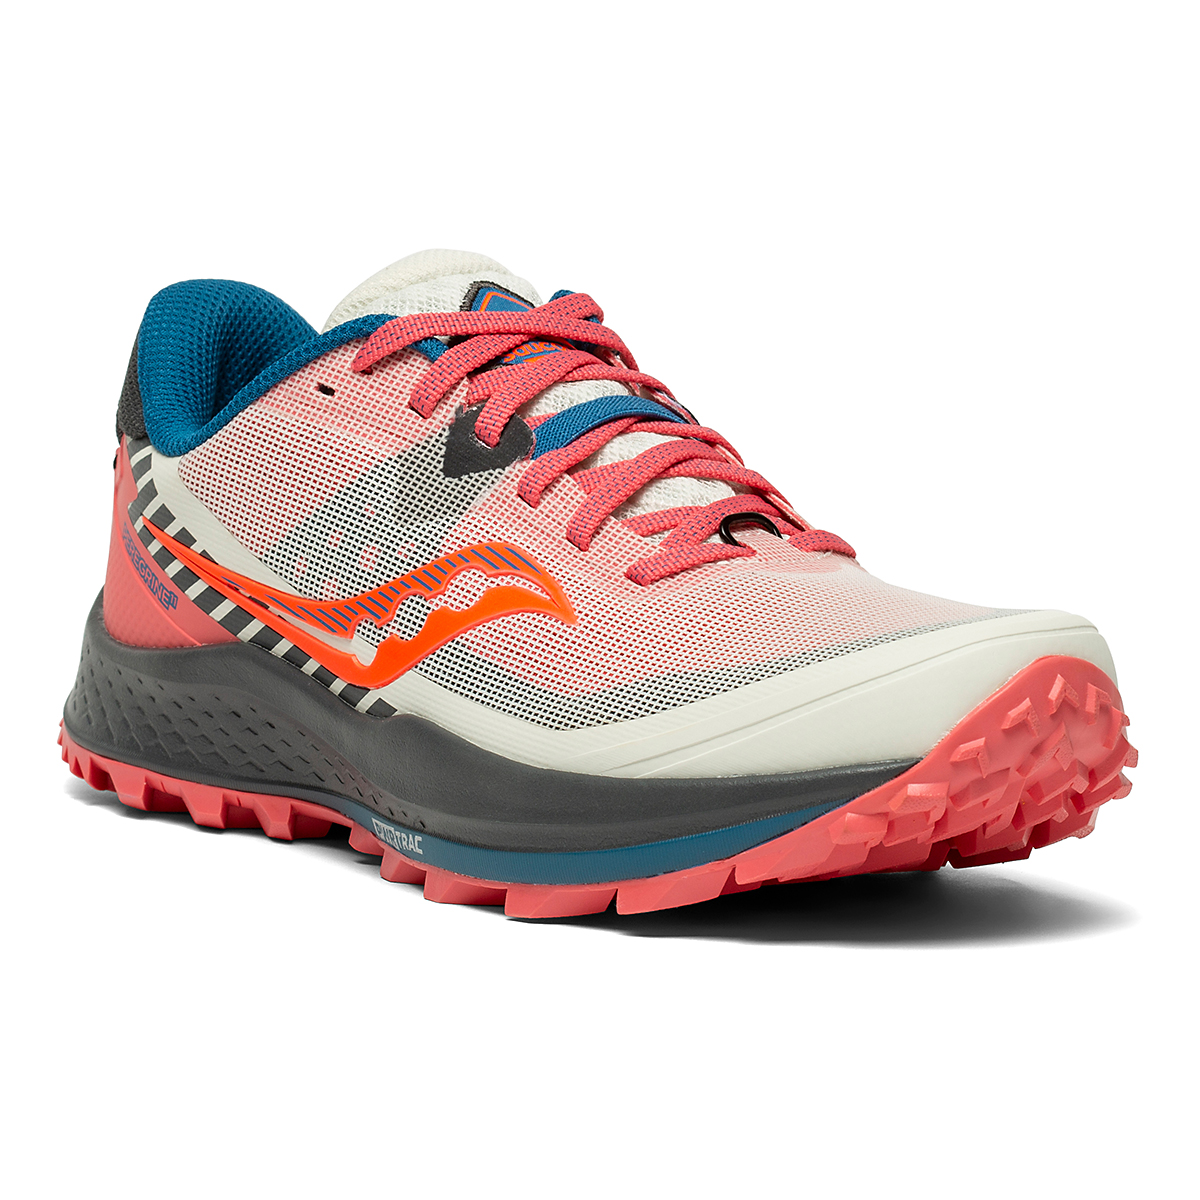 Women's Saucony Peregrine 11 Trail Running Shoe, , large, image 5